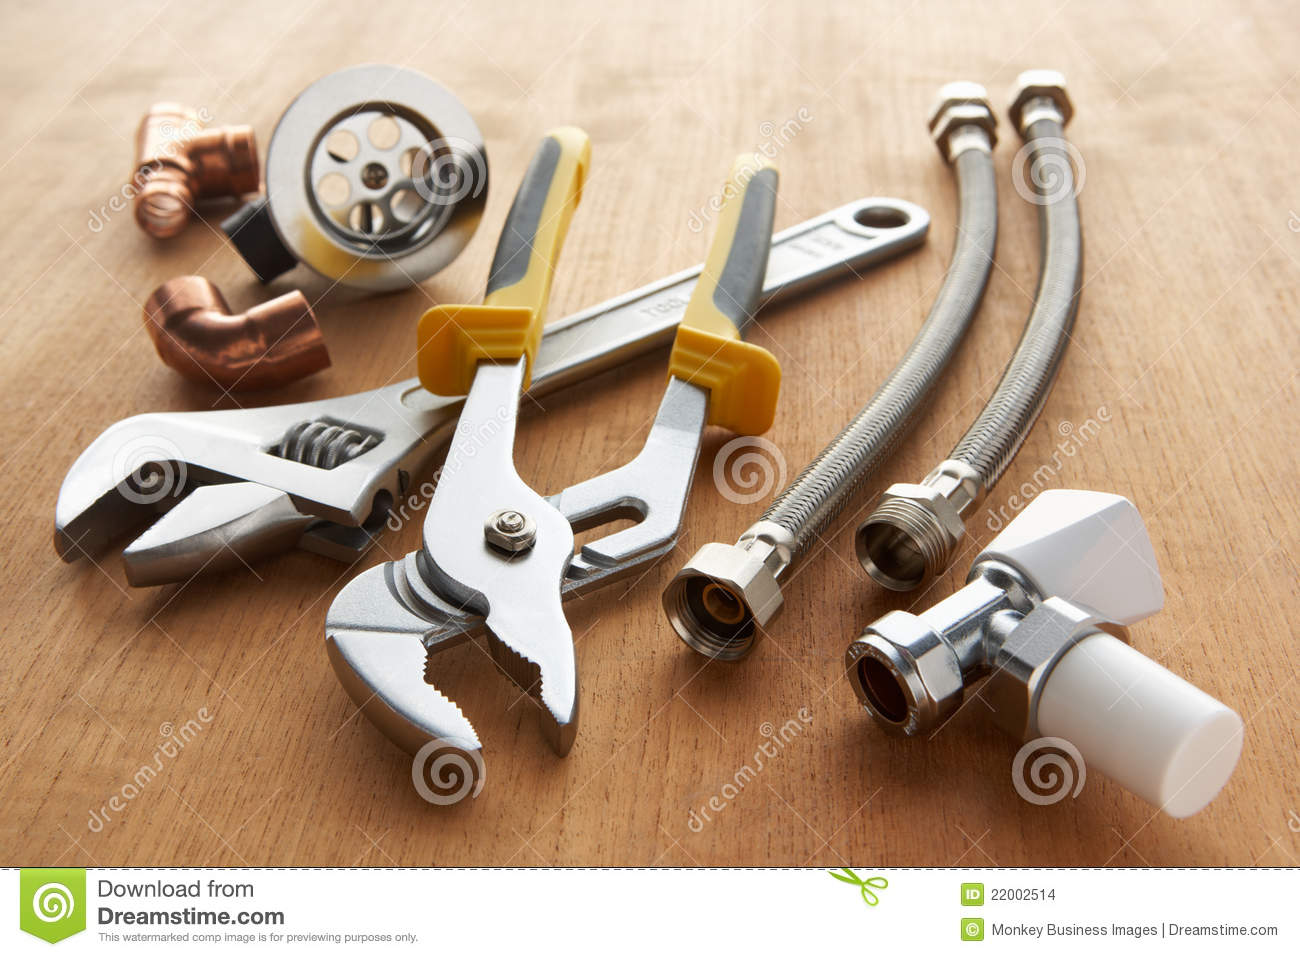 Plumbing Tools And Materials Stock Photo Image 22002514